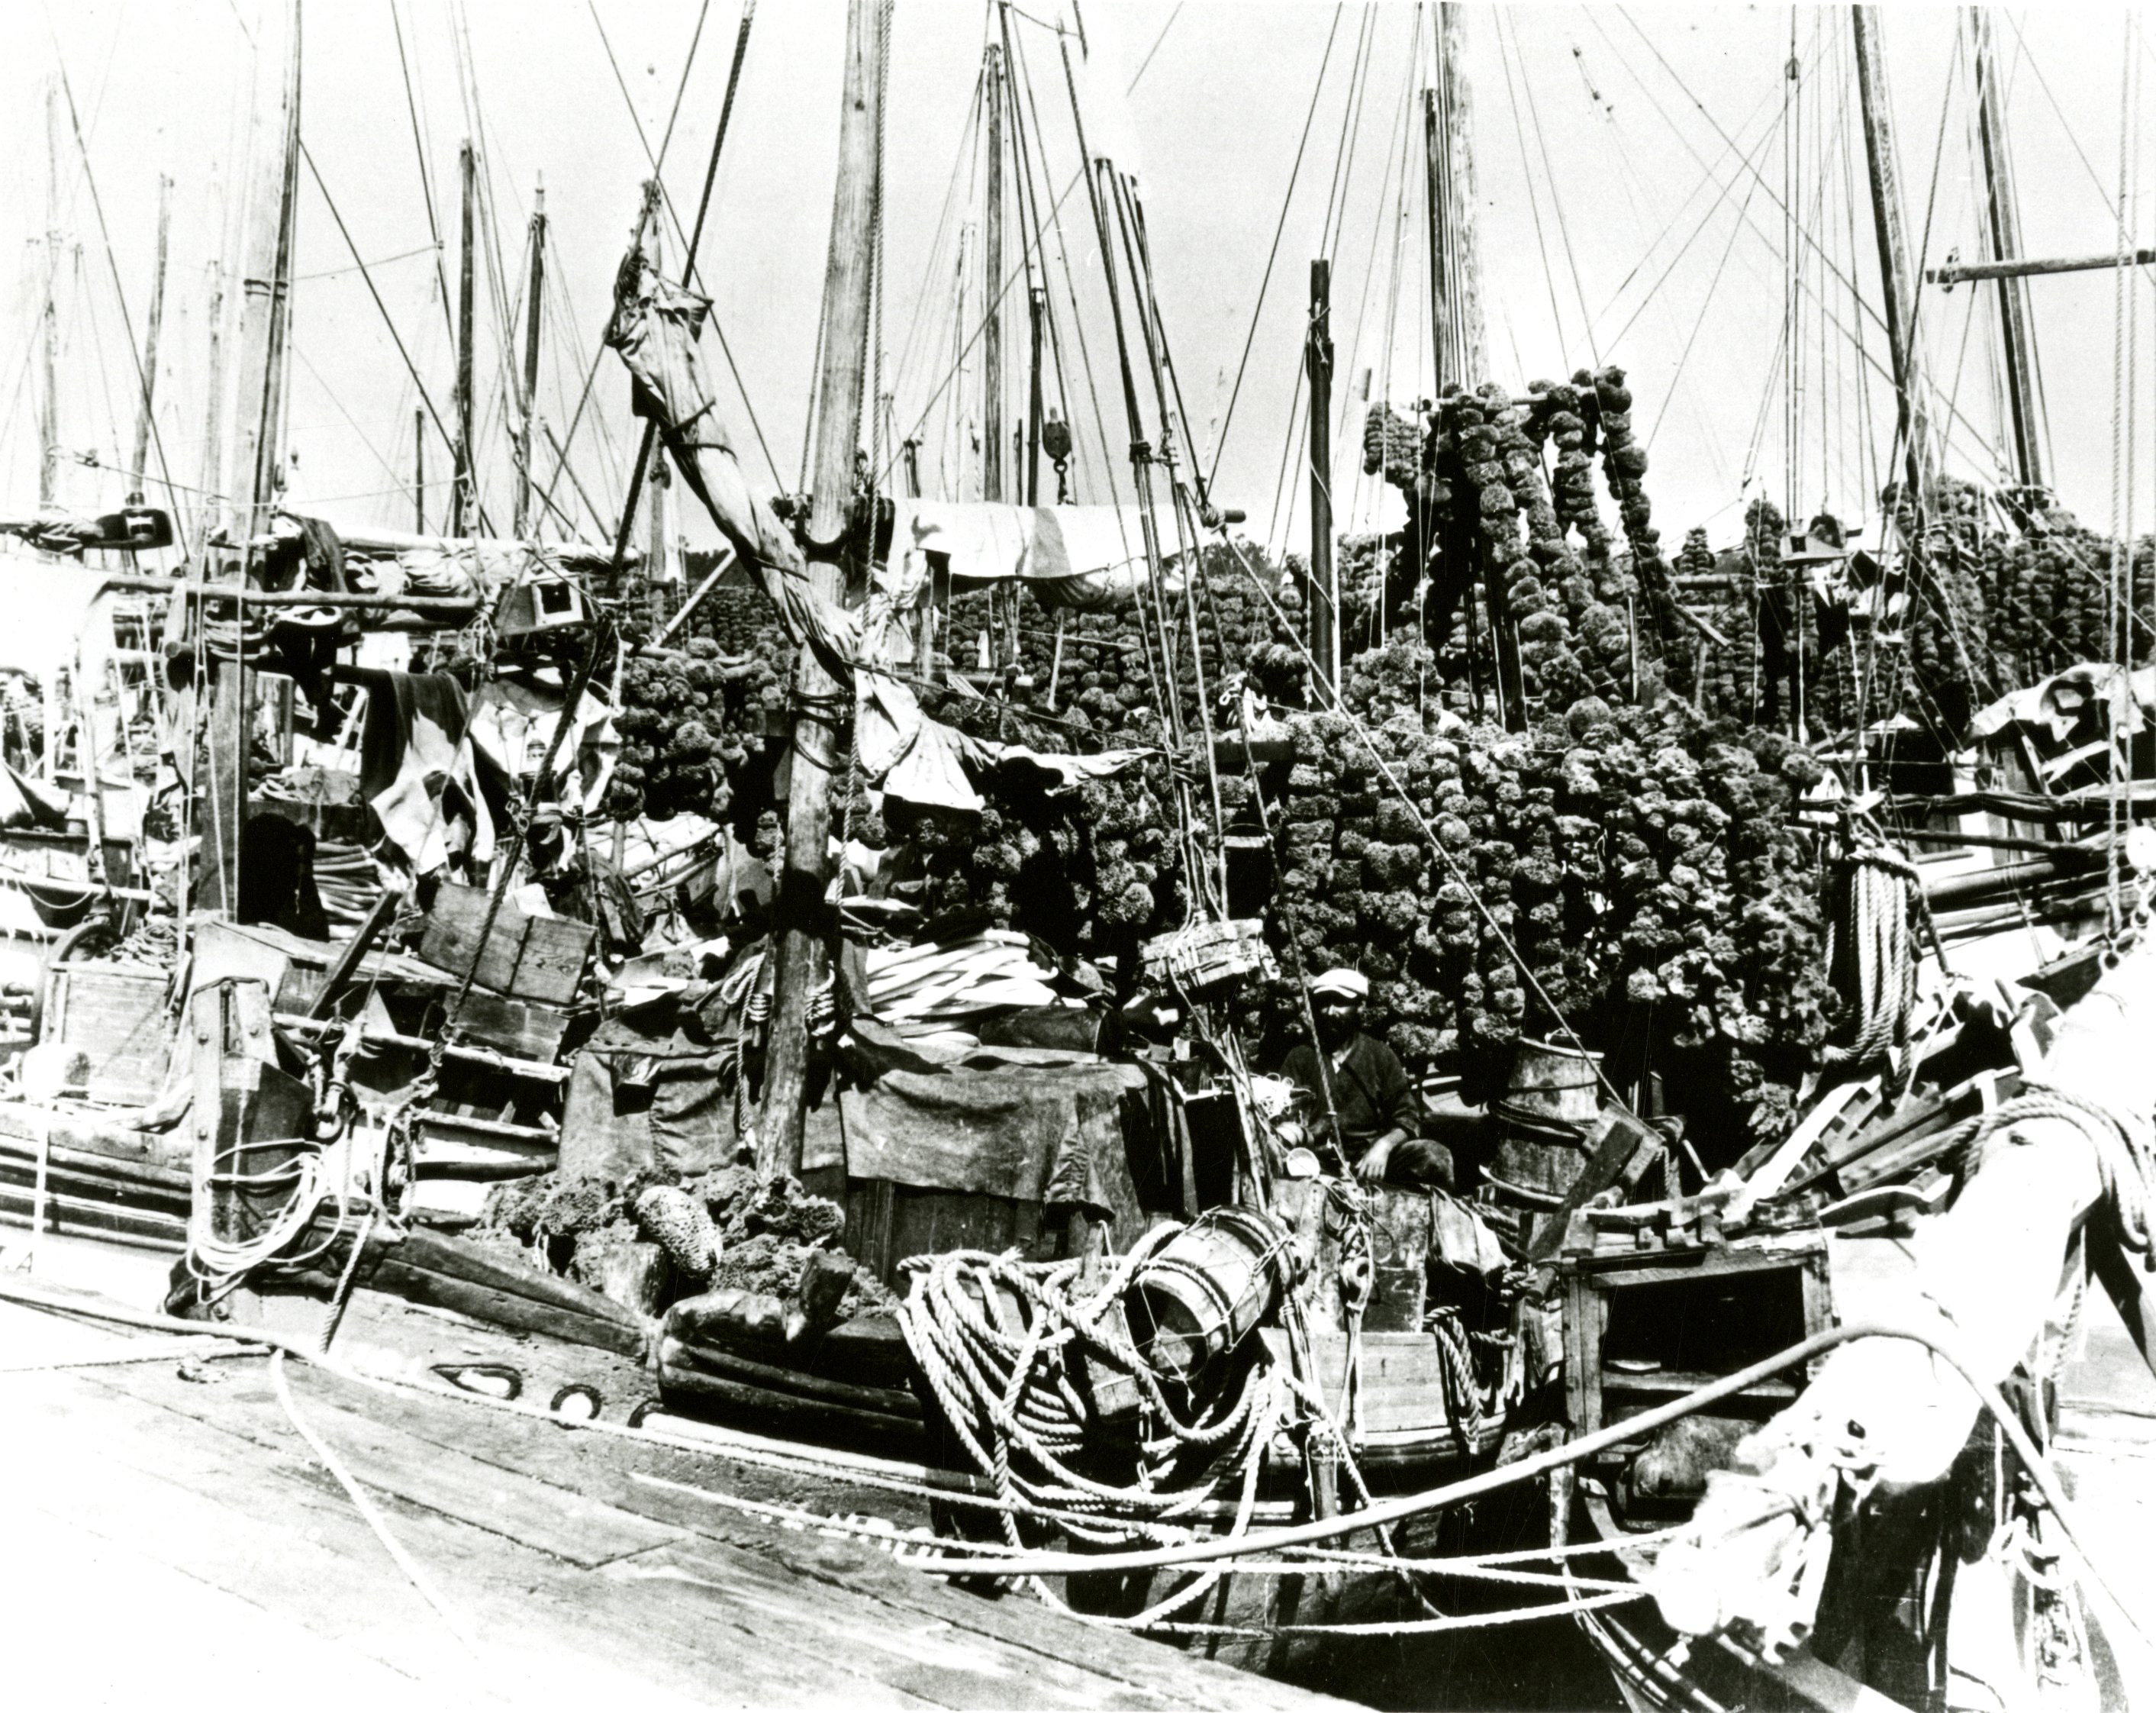 Docked sponge boats at Tarpon Springs, Florida, circa 1920.